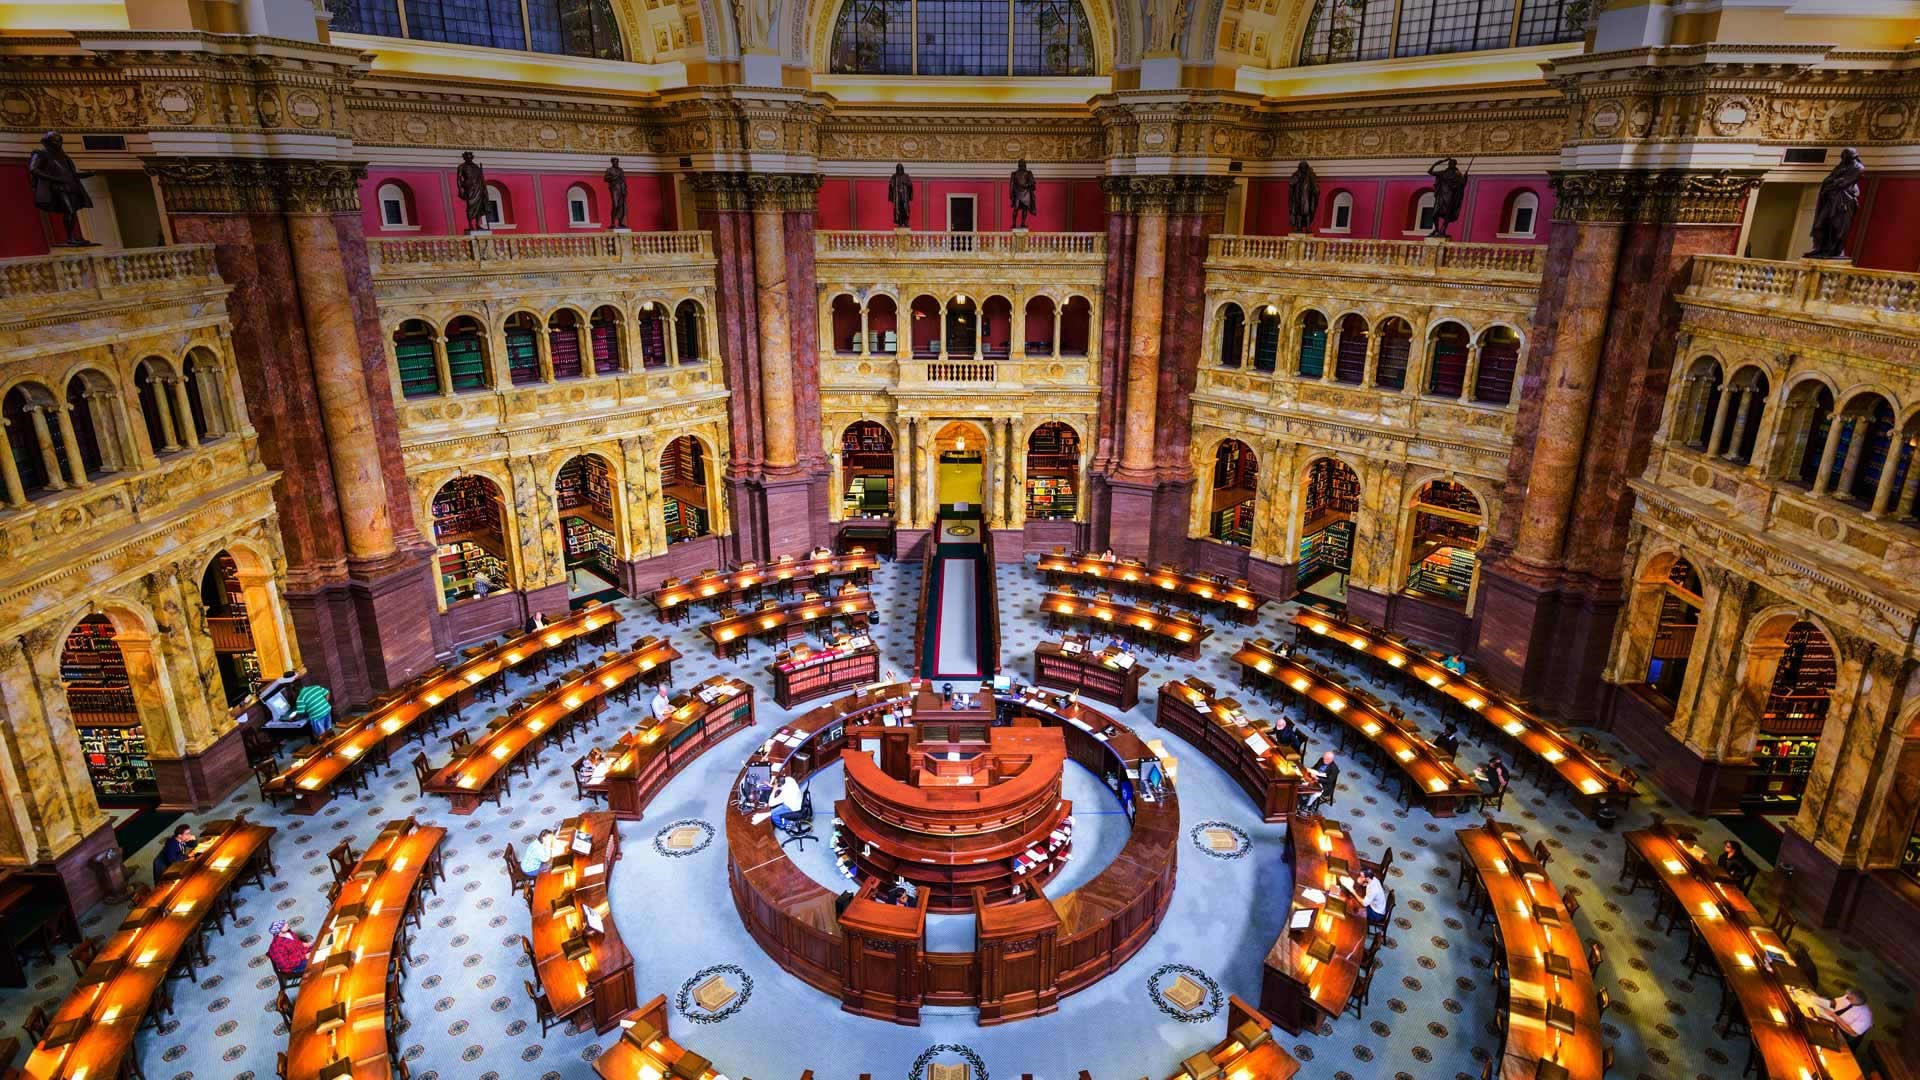 Iphone X Wallpaper For Note 8 Main Reading Room Of The Library Of Congress Washington Dc